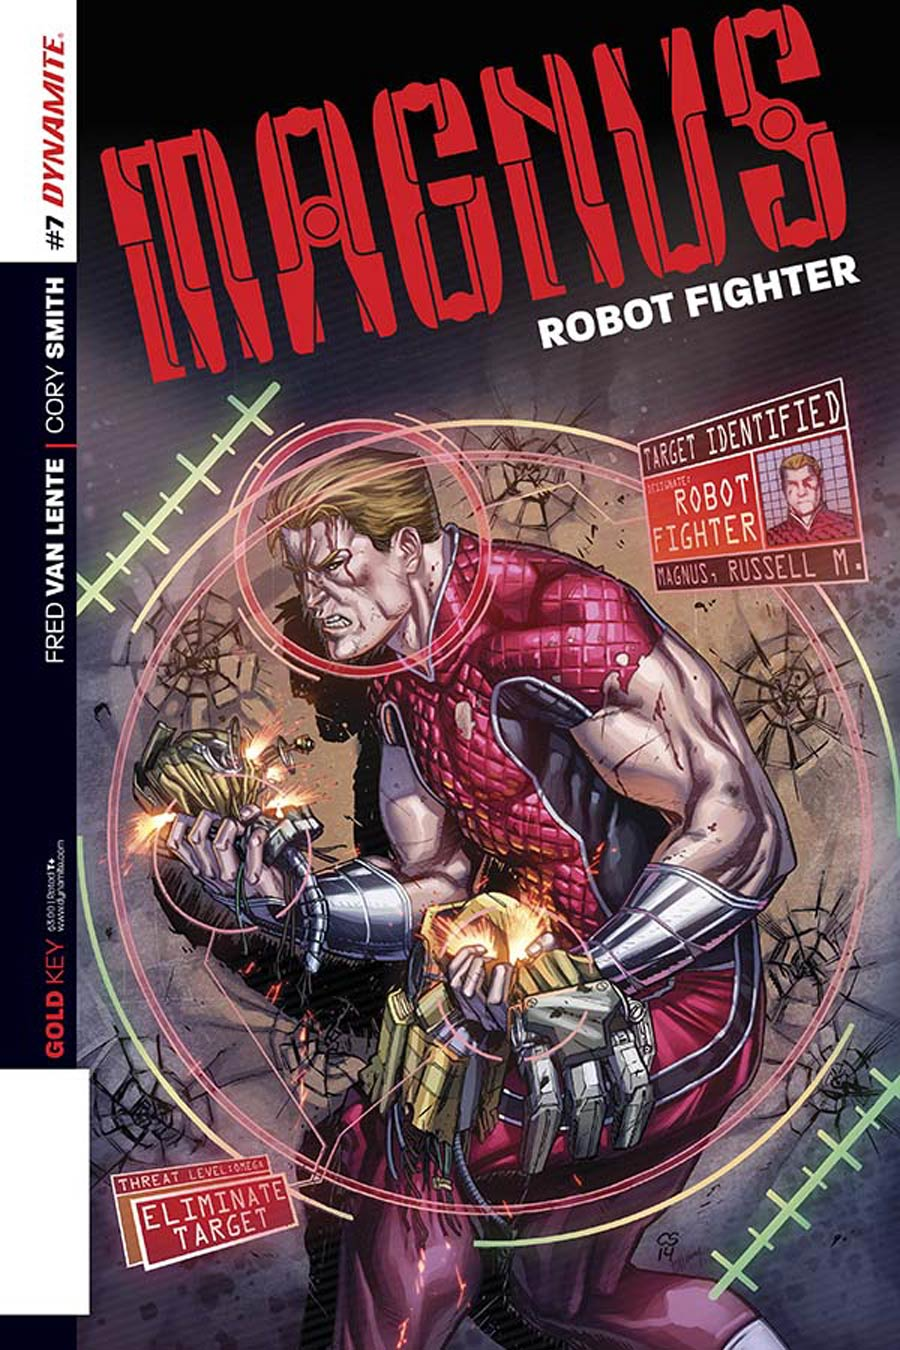 Magnus Robot Fighter Vol 4 #7 Cover B Variant Cory Smith Subscription Cover